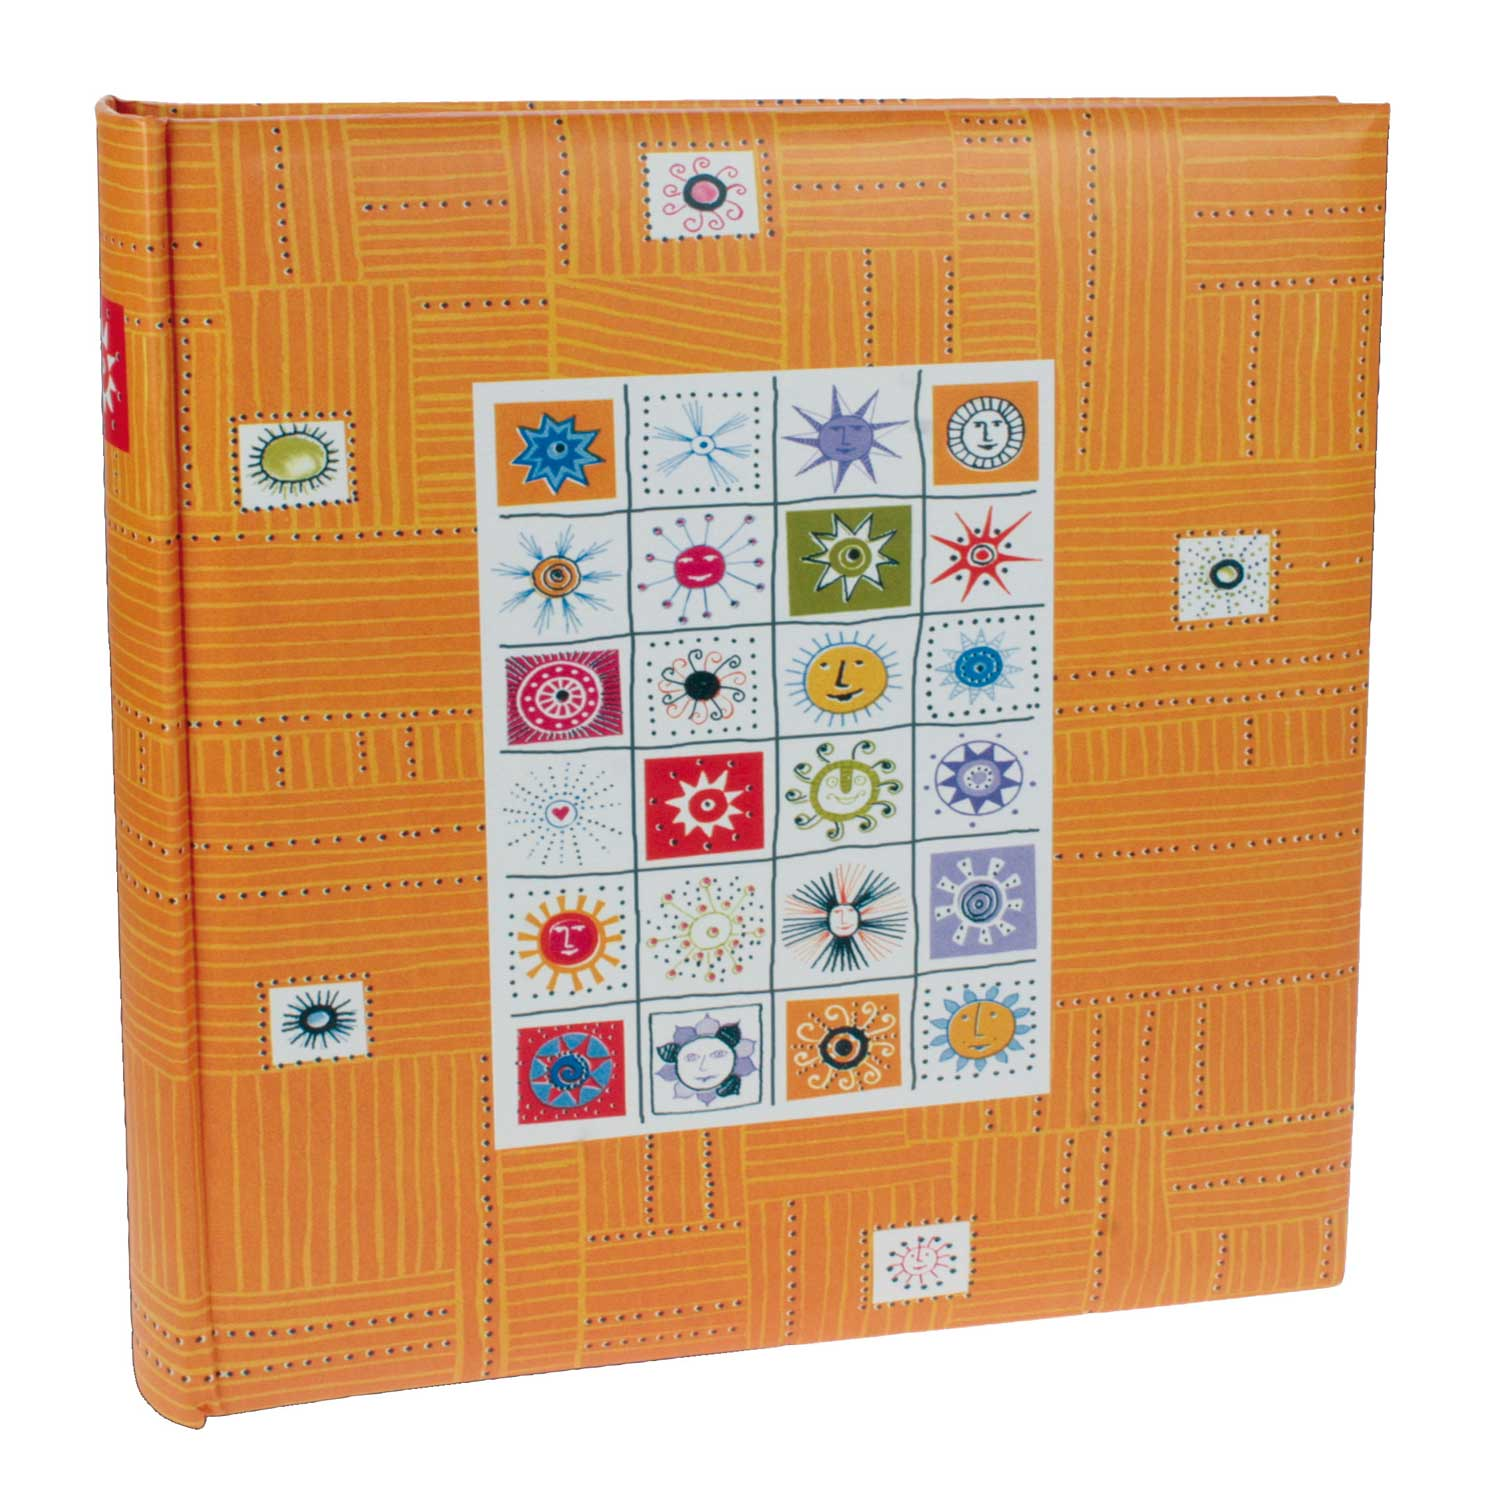 Dorr Stamps Orange Traditional Photo Album - 100 Sides